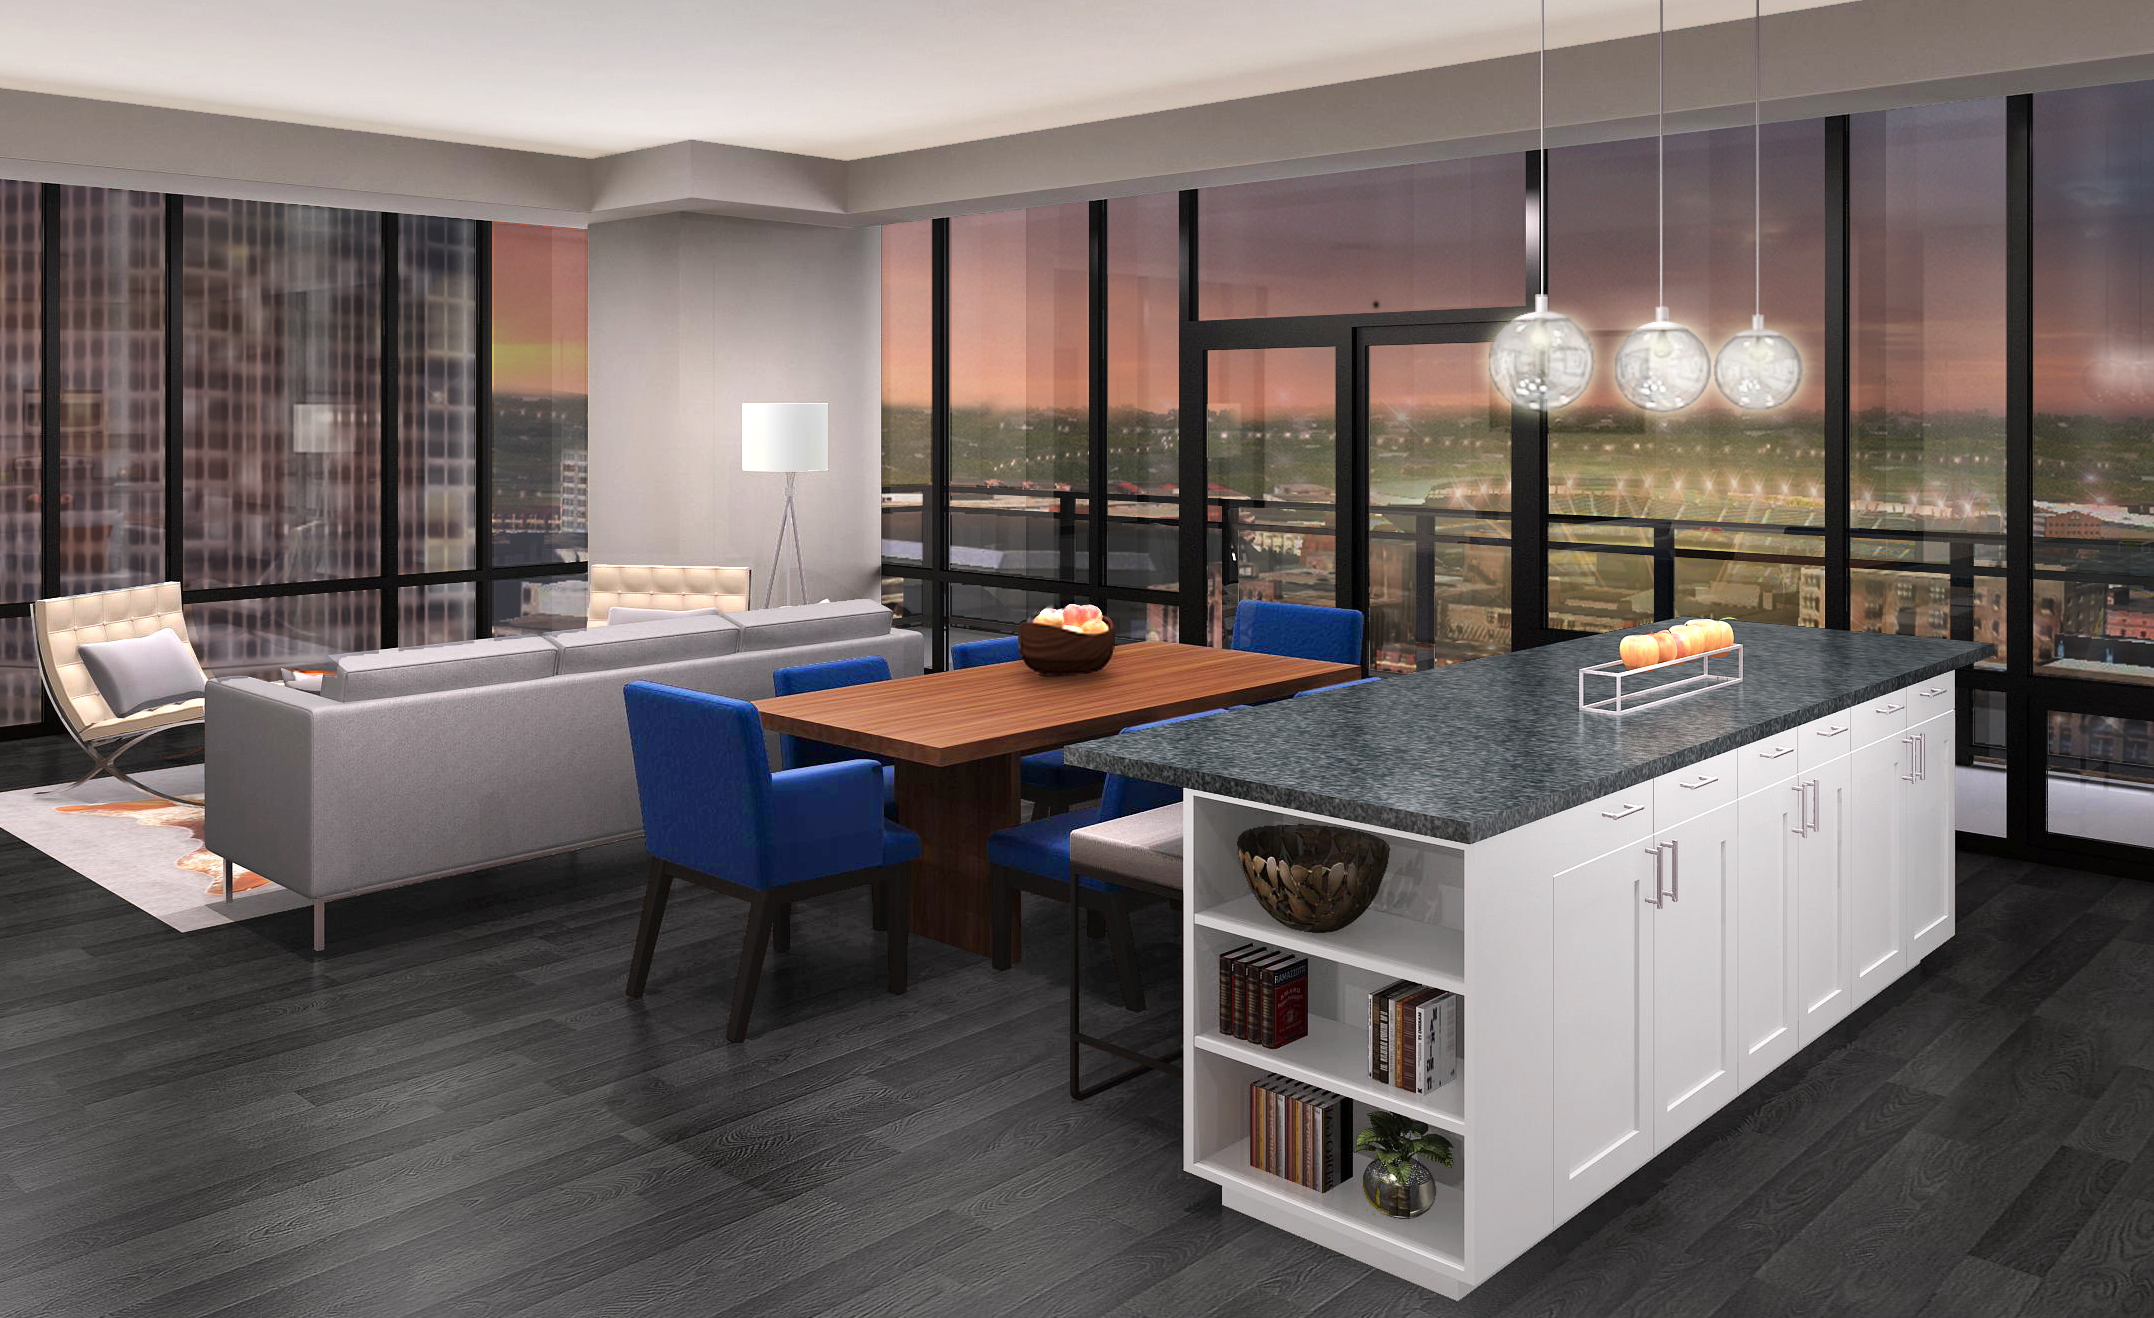 Get A First Look At The Nic On Fifth Luxury Apartments In Downtown Minneapolis Startribune